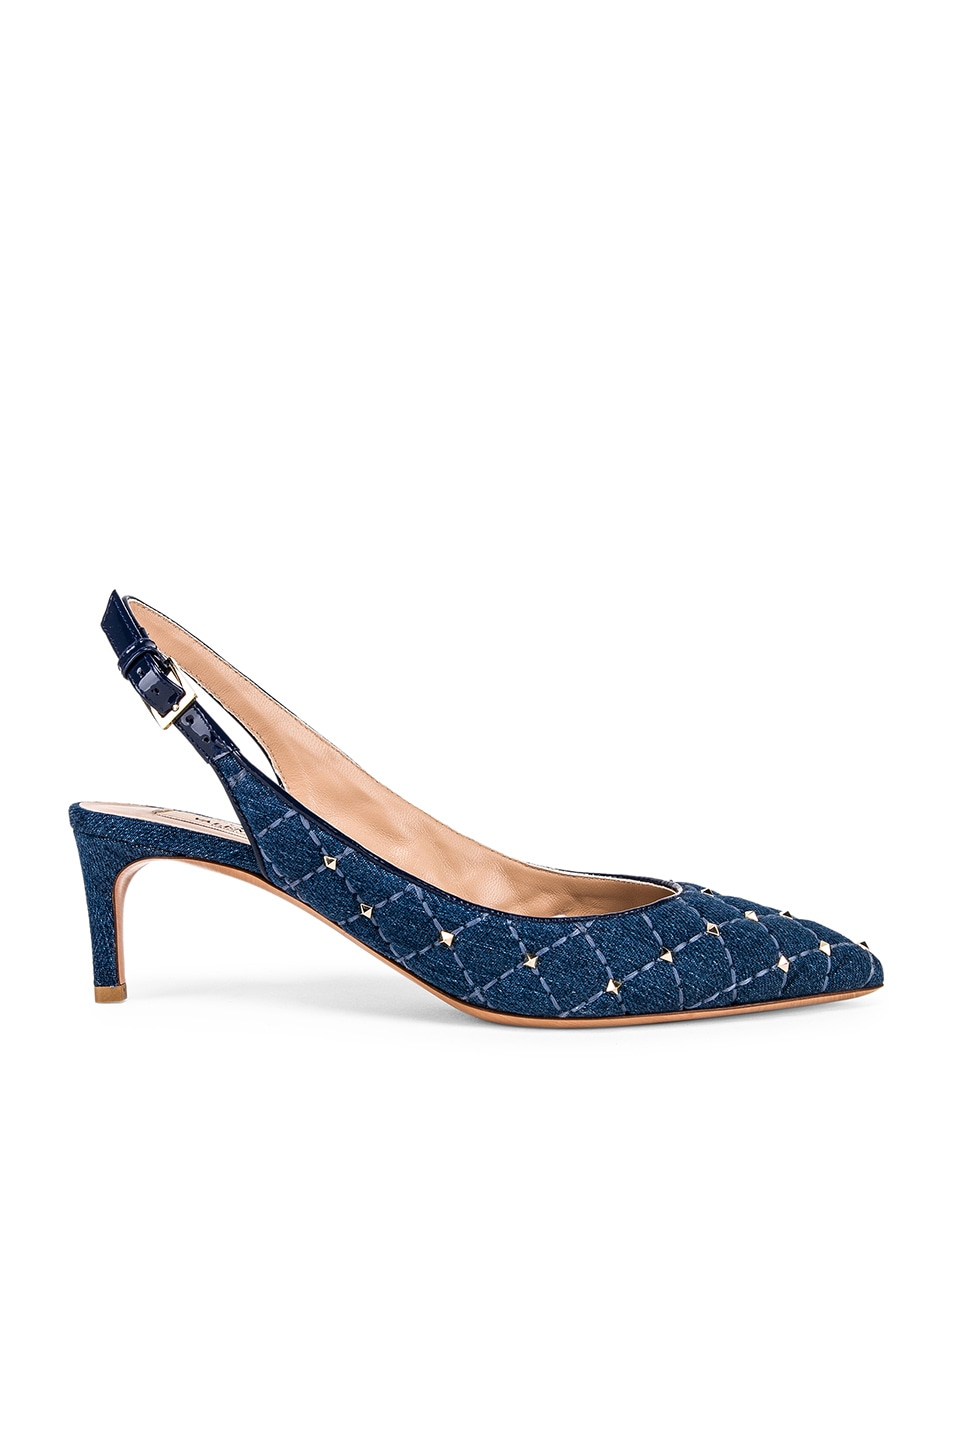 Image 1 of Valentino Rockstud Spike Sling Back Heels in Light Denim